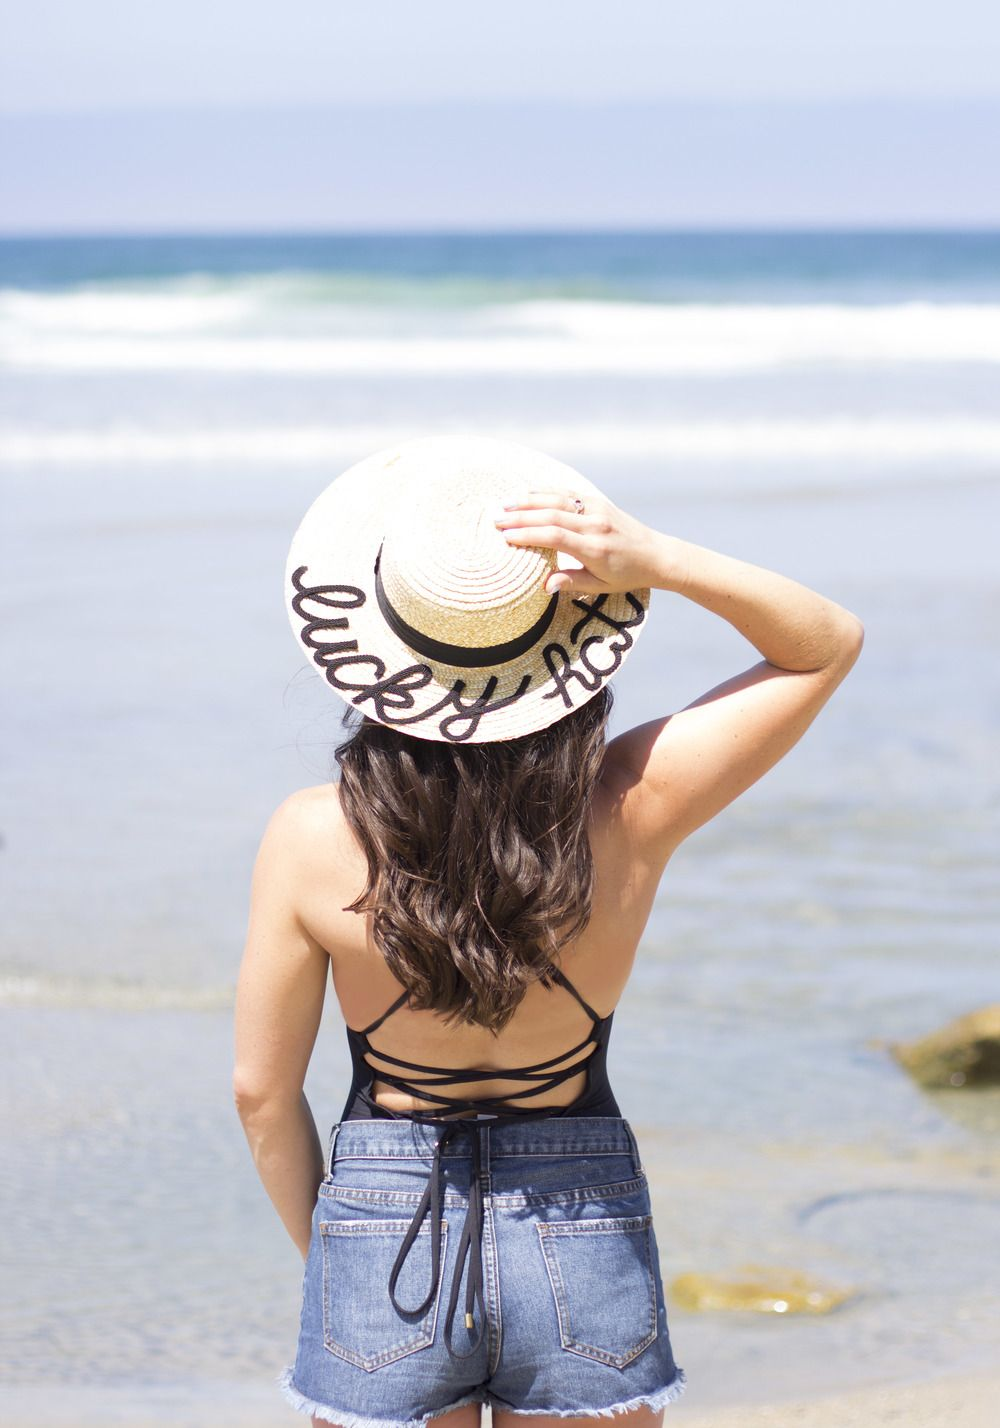 DIY FOR LESS EUGENIA KIM 'BRIGITTE' BOATER HAT Boater